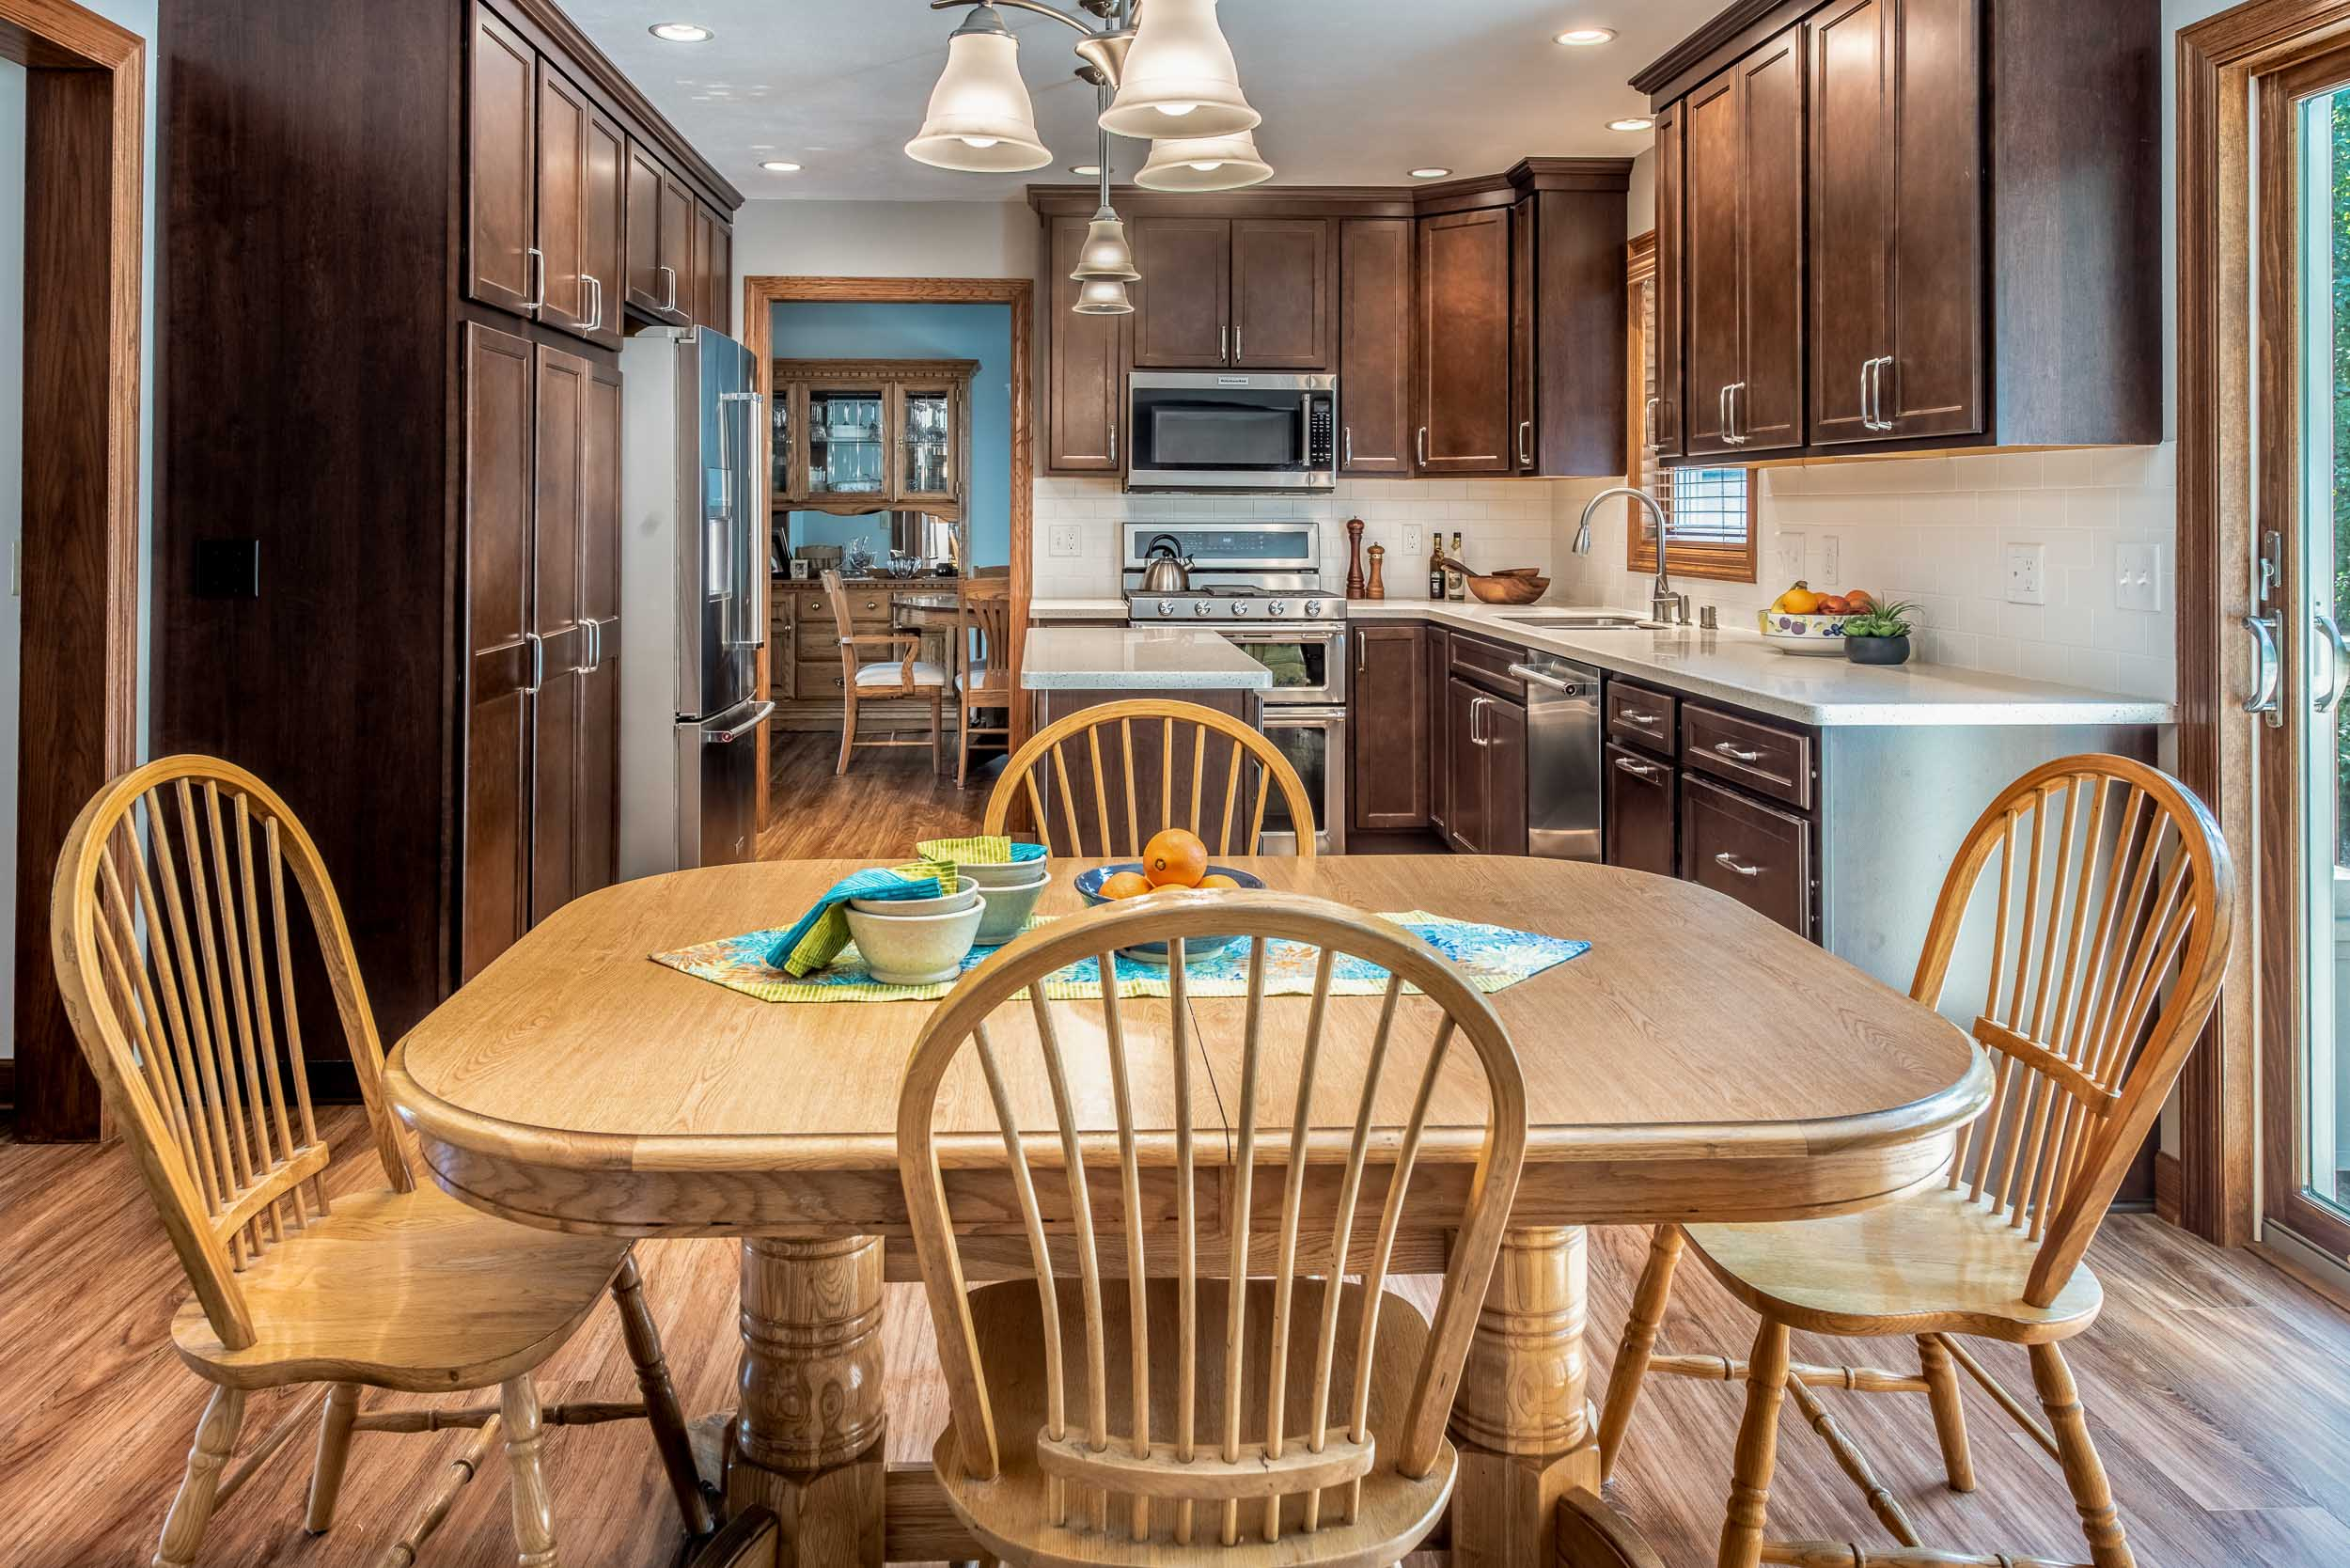 A new floor plan made Navigating From The Kitchen To The Dinette Easy.